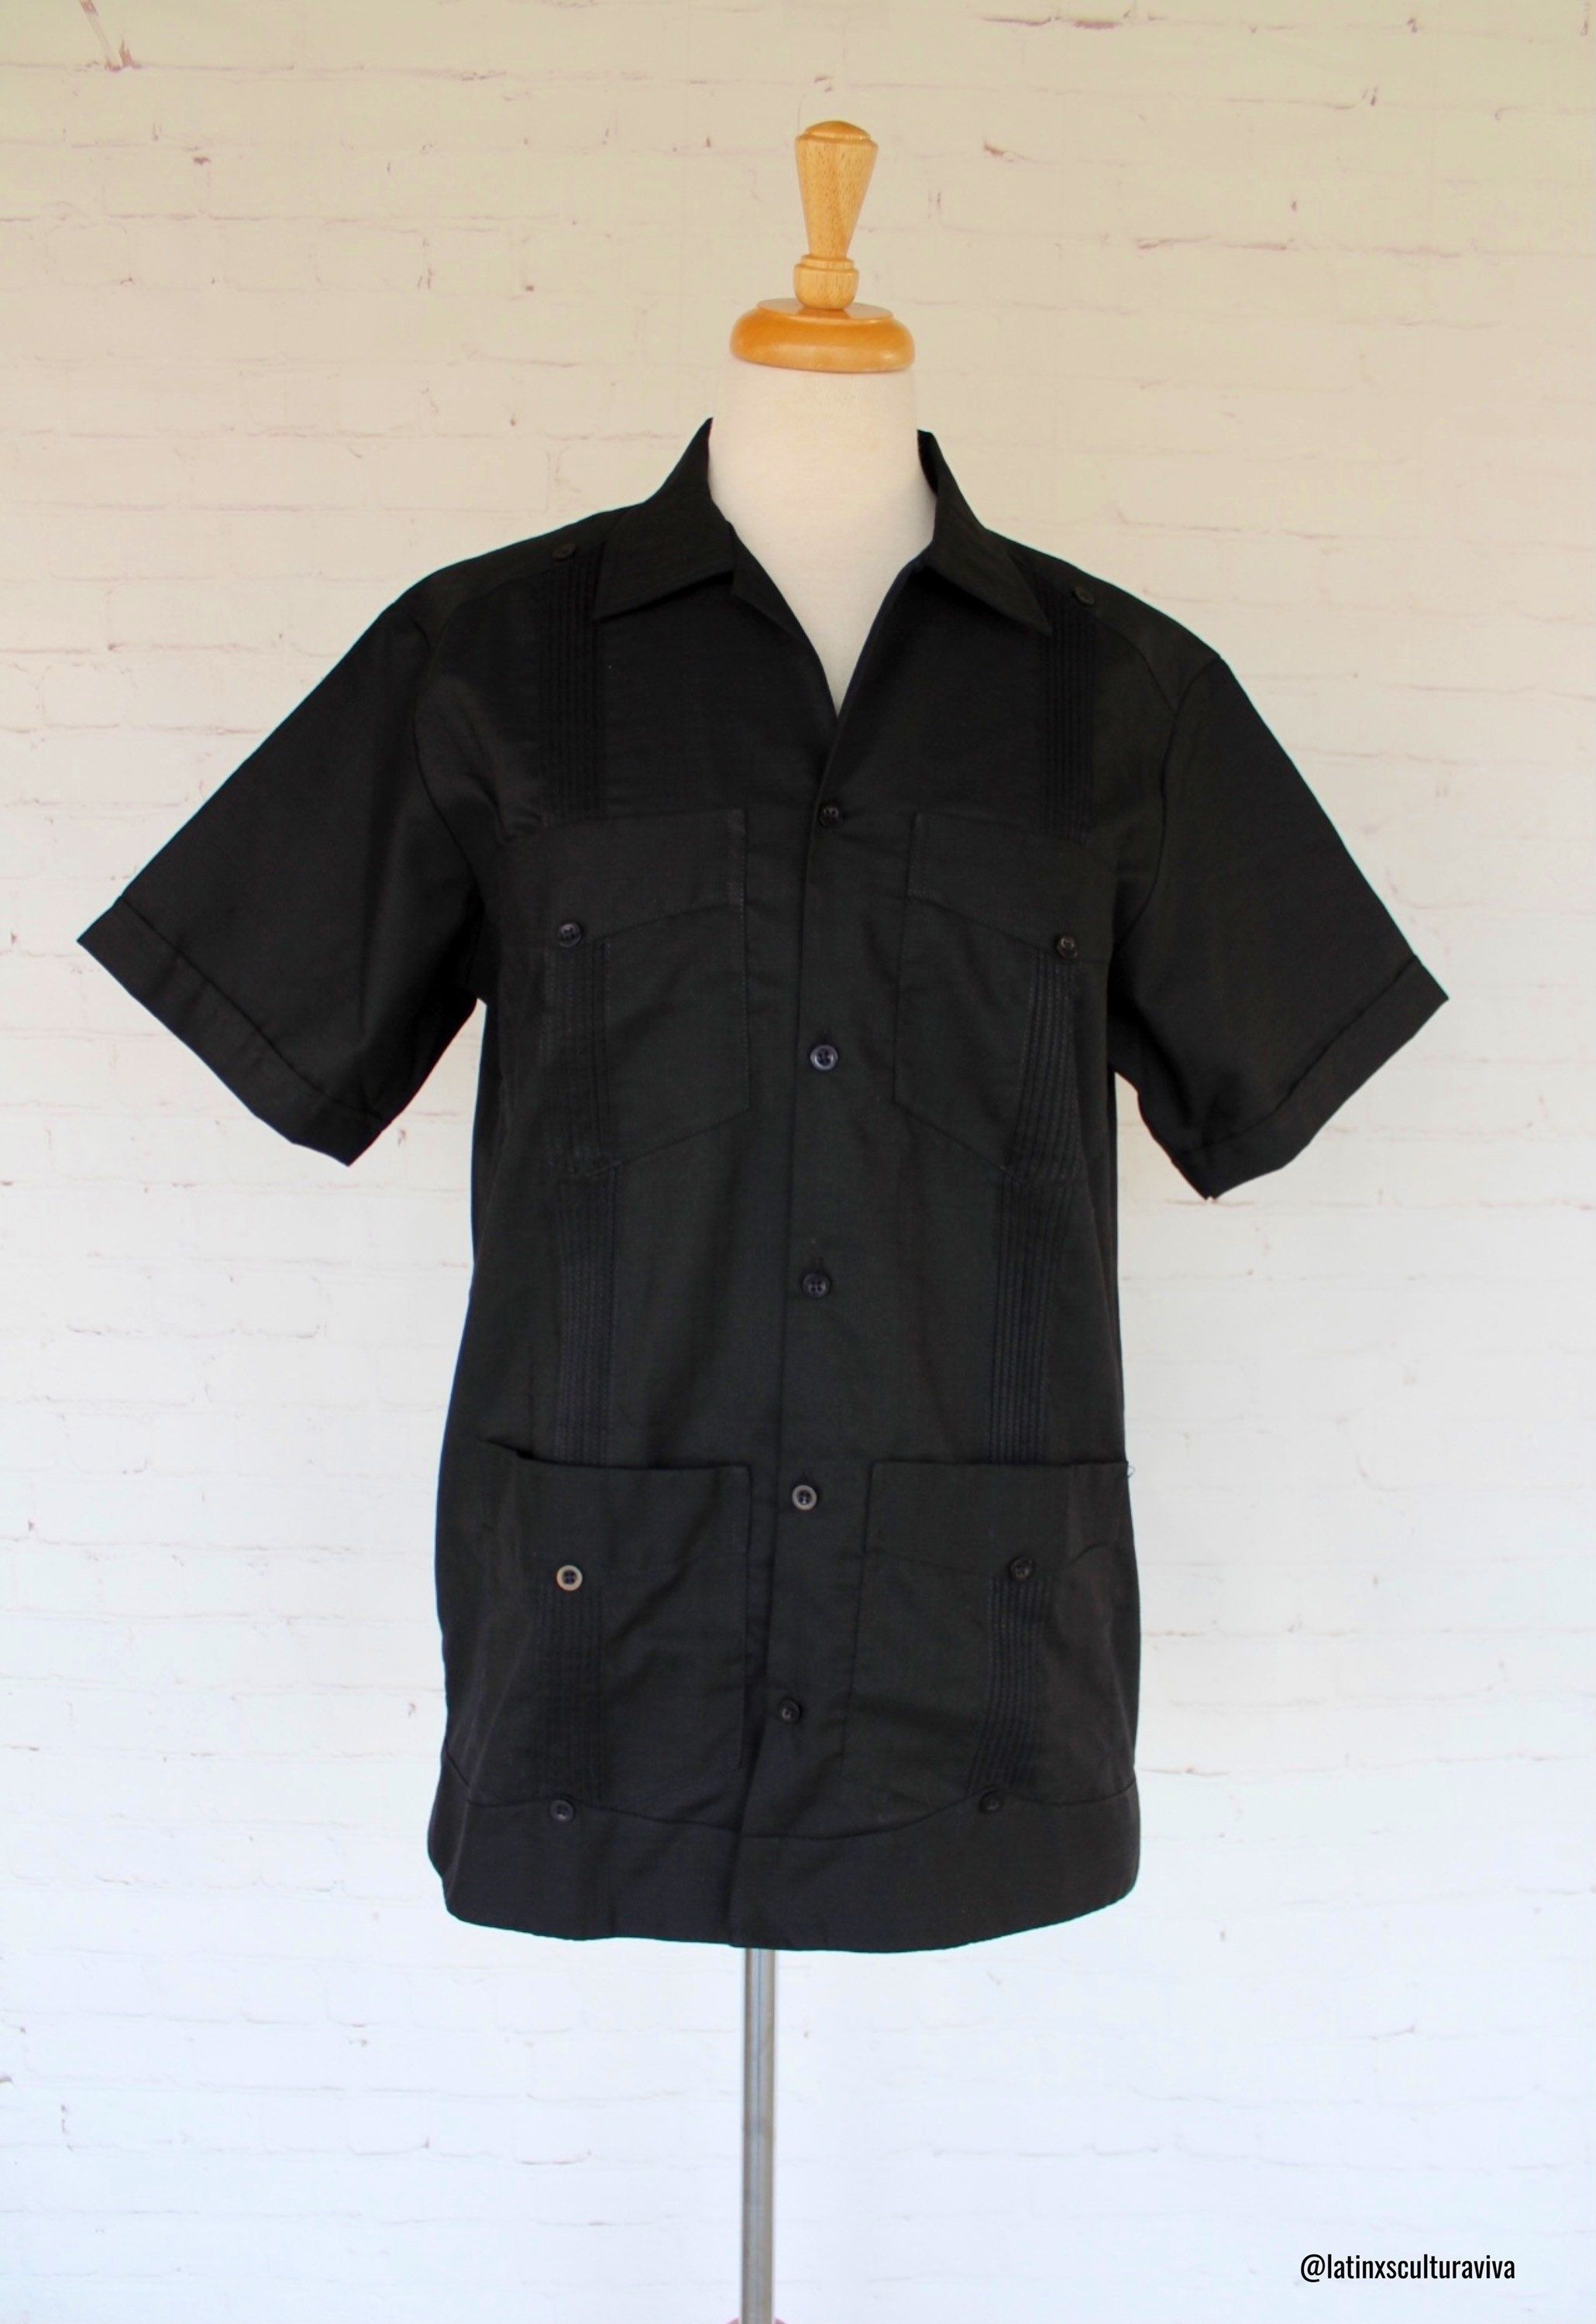 This black guayabera is an elegant garment, and very versatile. Guayabera can be wear on formal occasions like weddings, meetings, or in relaxed places such as fiestas and beaches, etc. A Mexican Guayabera is definitely a garment that you must-have for any occasion. This is a linen guayabera with 4 pockets on the front. Note: We recommend washing by hand. Each Guayabera shirt that we sell is authentic and made with love by artisans from Yucatan, Mexico.